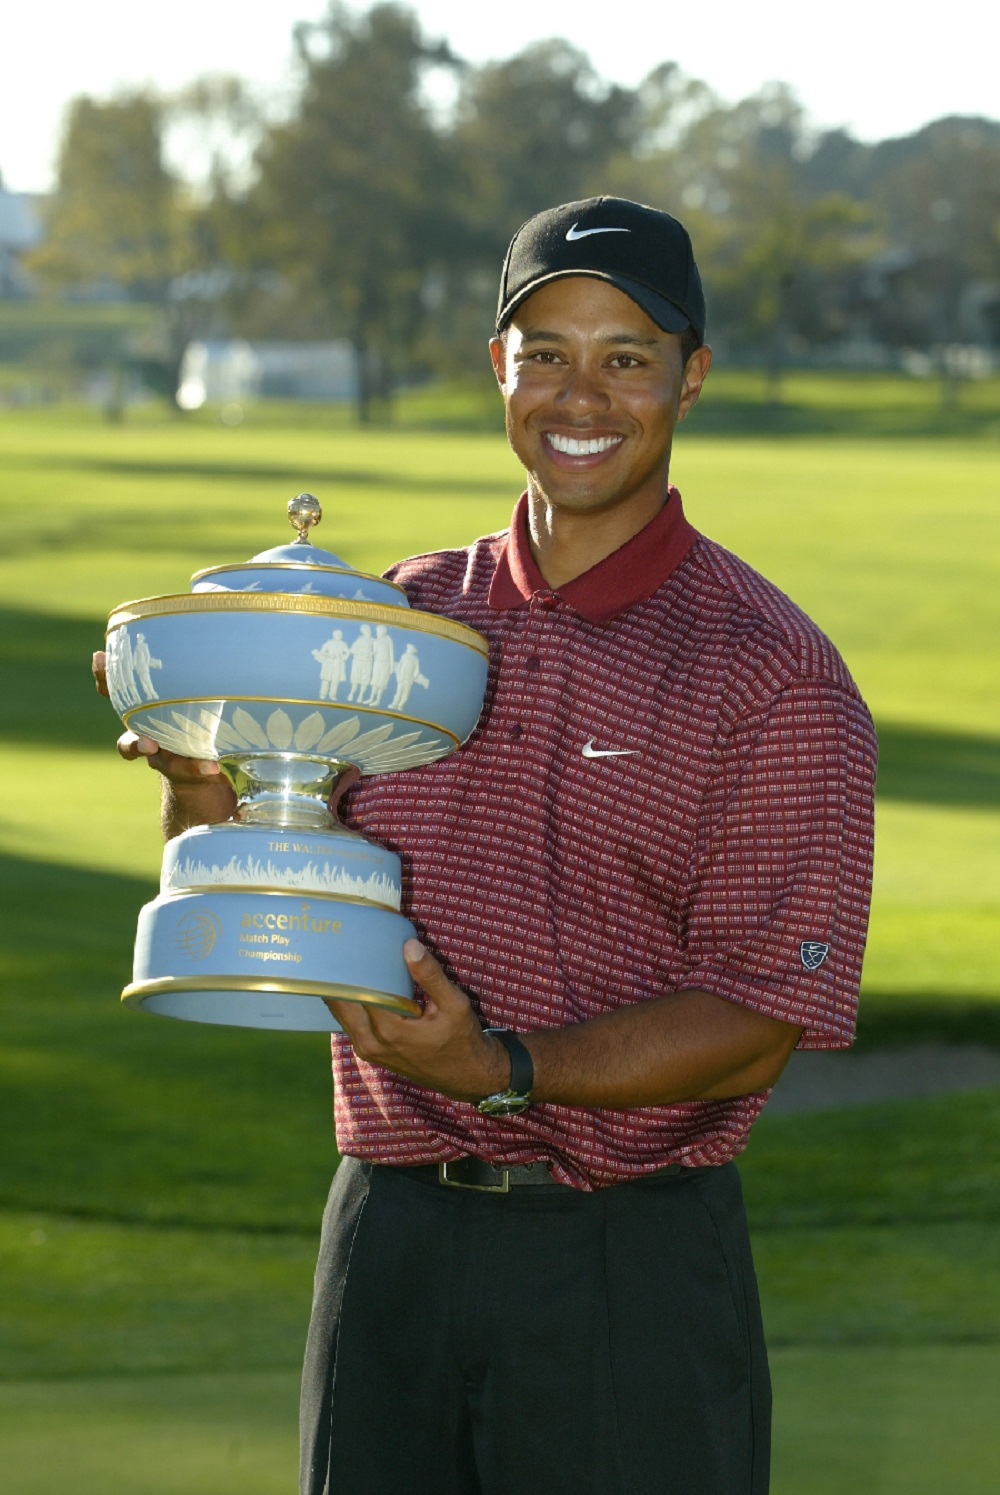 Tiger Woods holding trophy on golf course